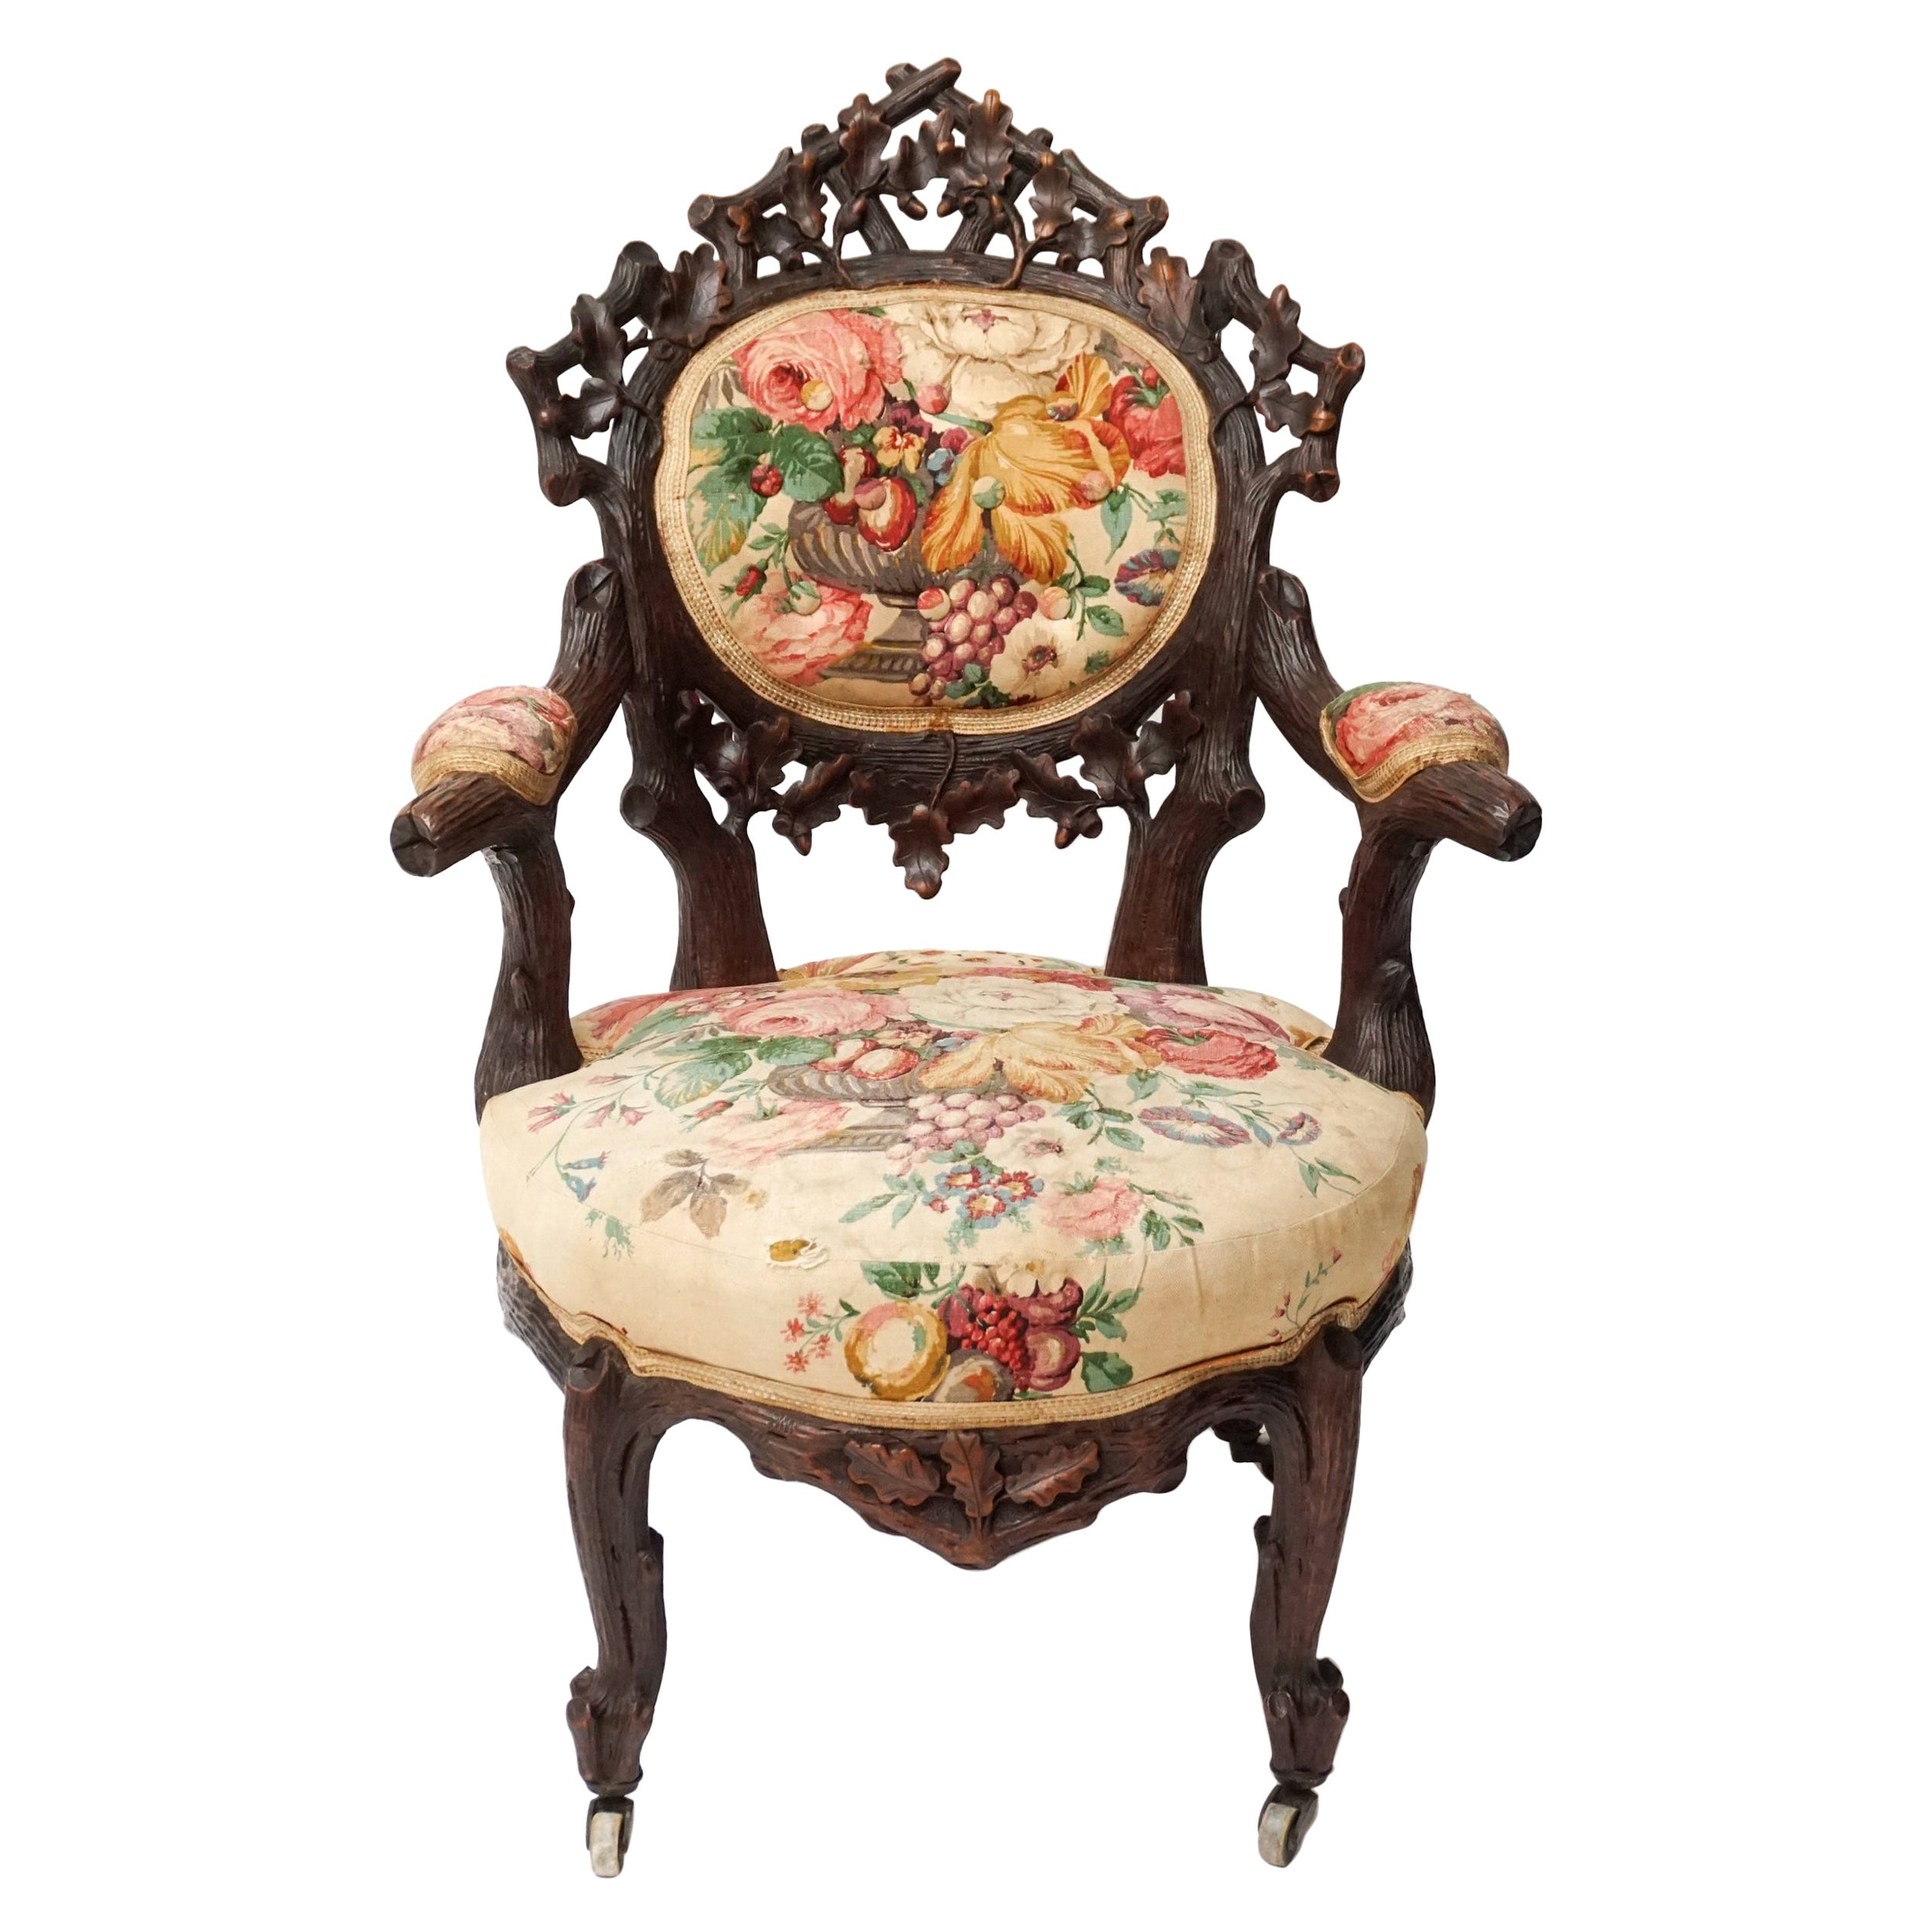 19th Century Black Forest Carved Walnut and Fabric Upholstered Armchair